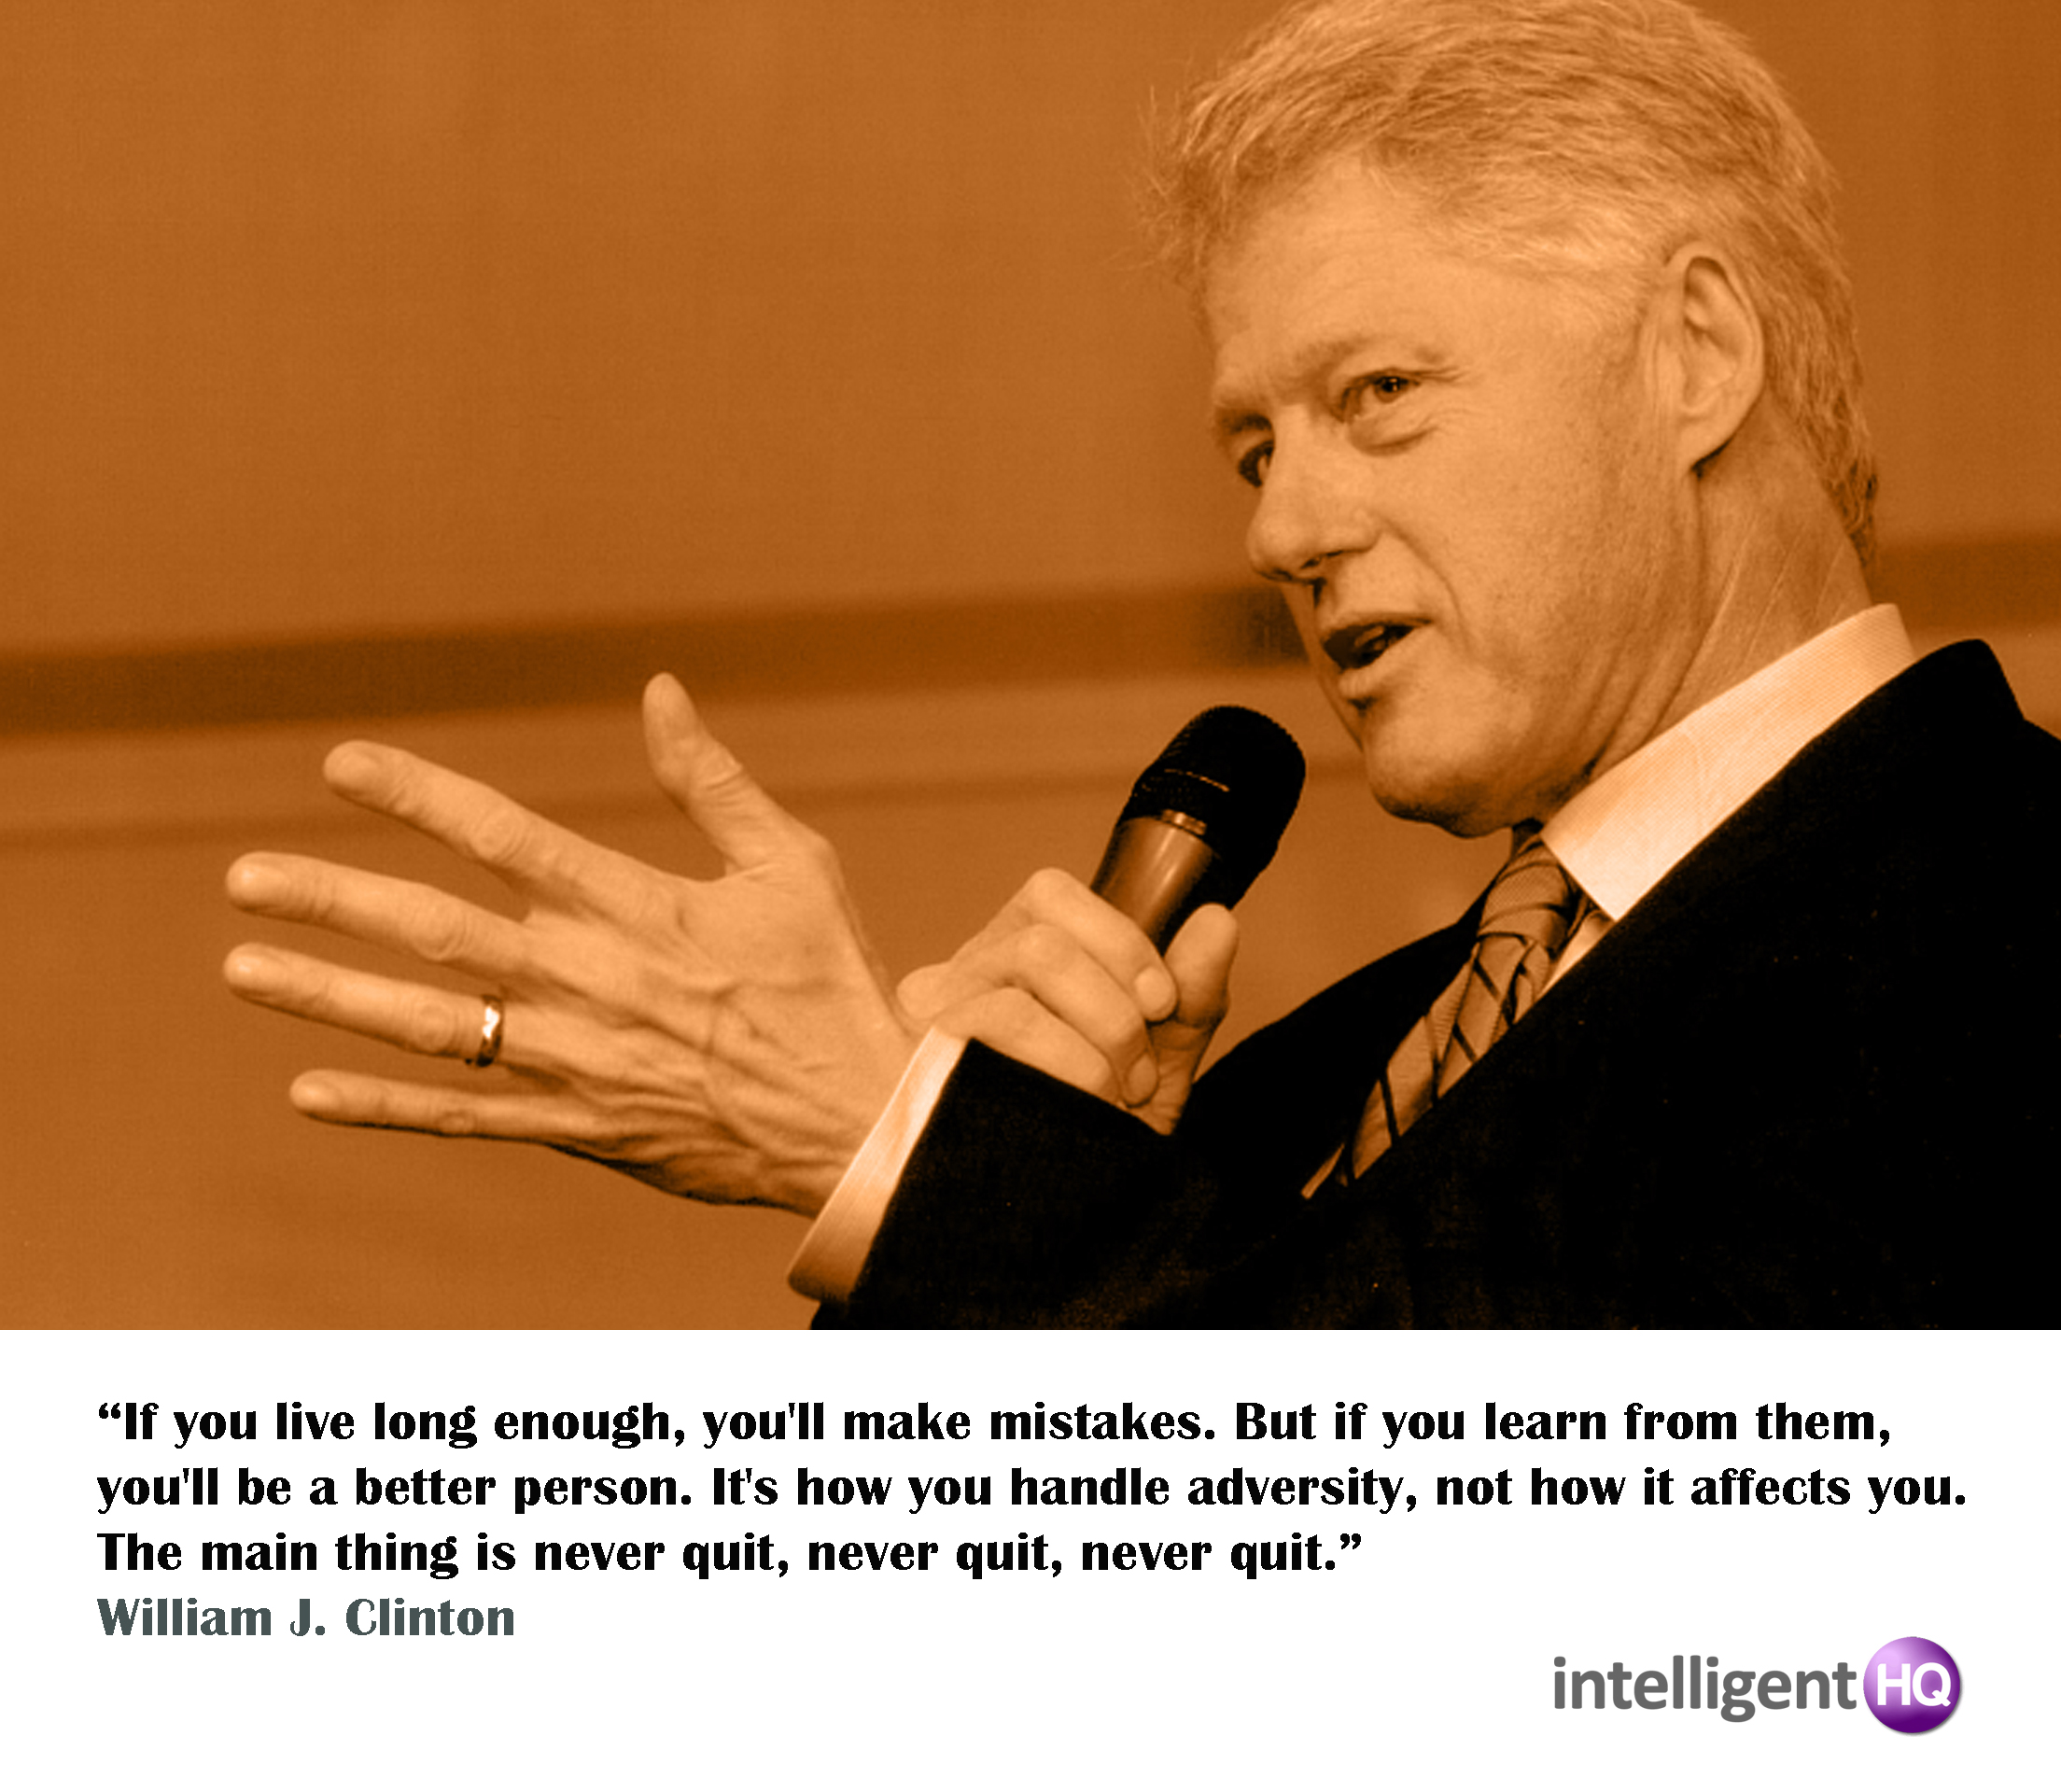 Quote by Bill Clinton Intelligenthq